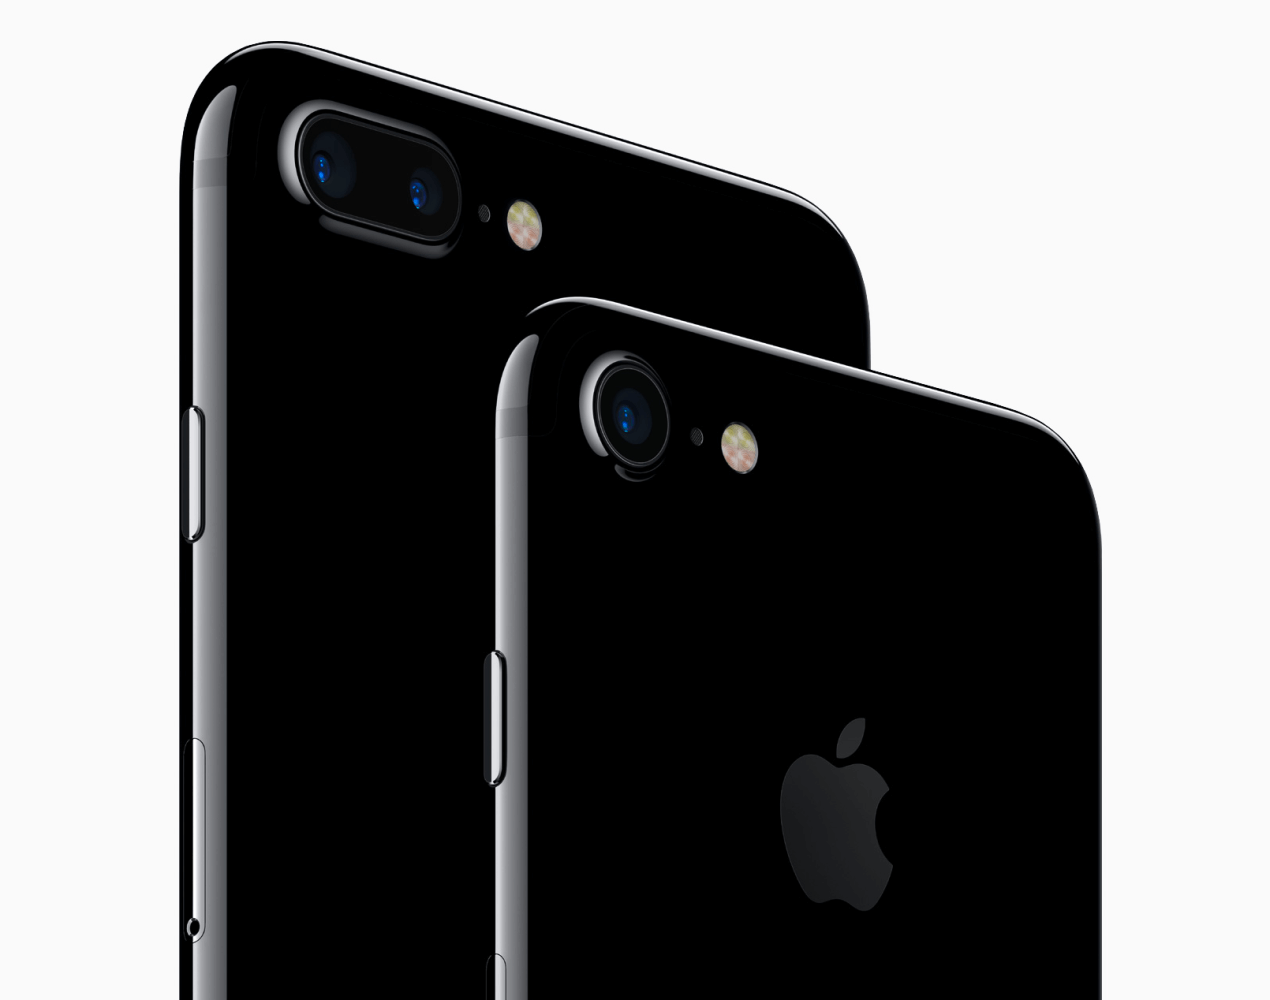 Apple's new iPhone 7 and 7 Plus–is it worth the upgrade?